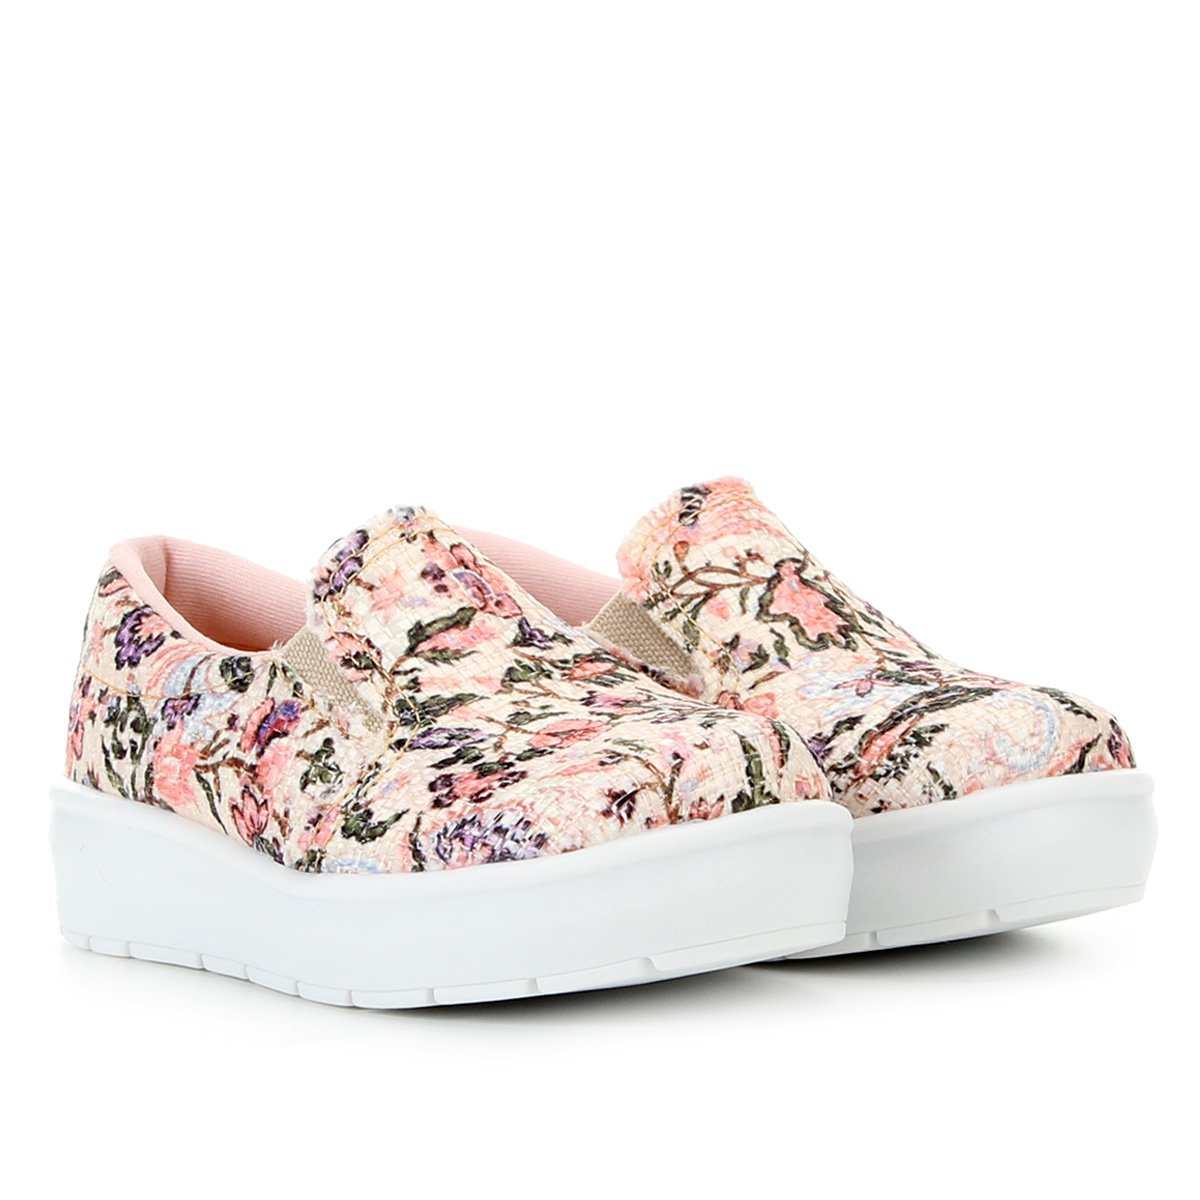 Foto 1 - Tênis Bella Ninna Slip On Animal Print Feminino